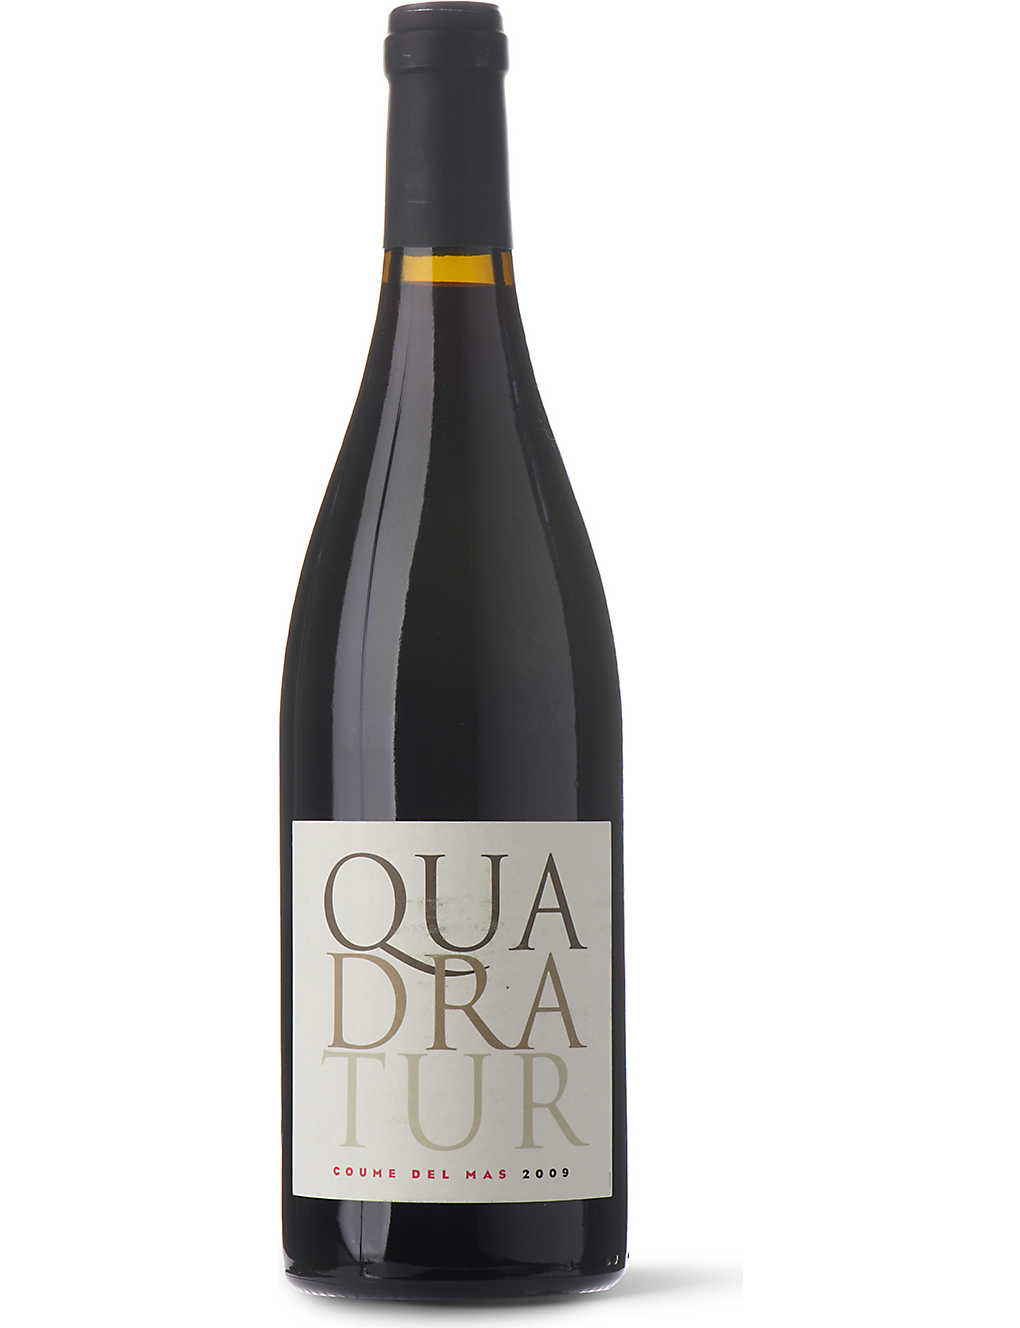 FRANCE: Quadratur 750ml